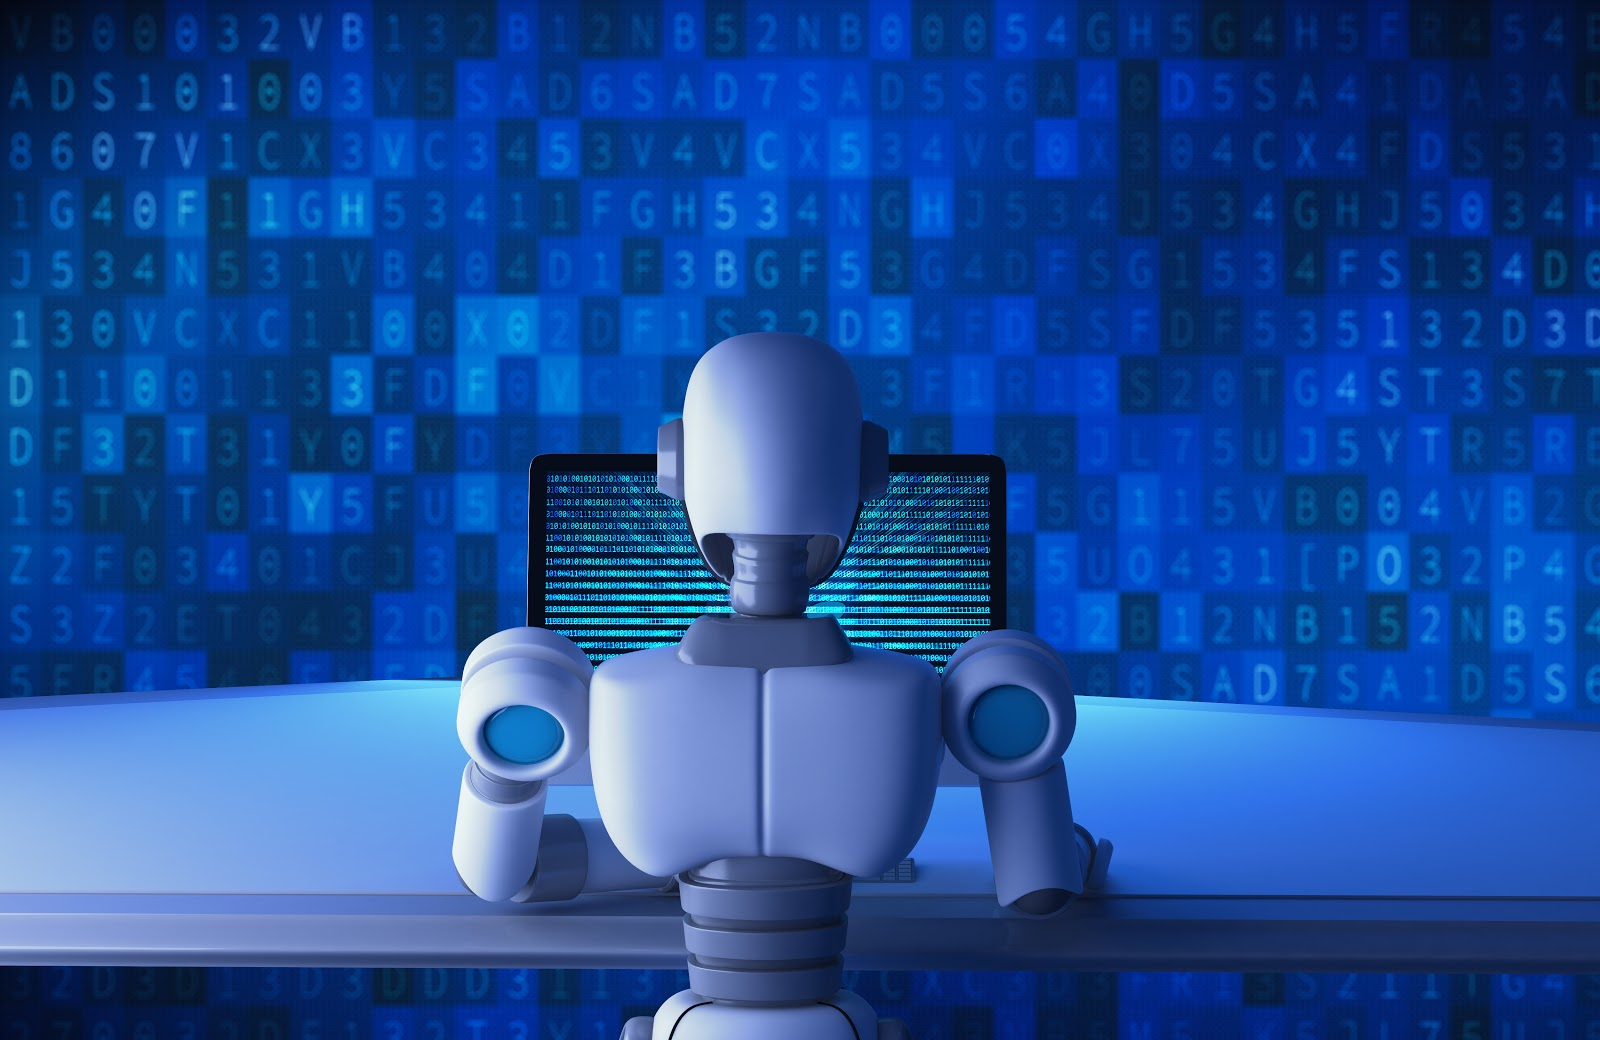 Robot with back to viewer sitting in front of computer screen